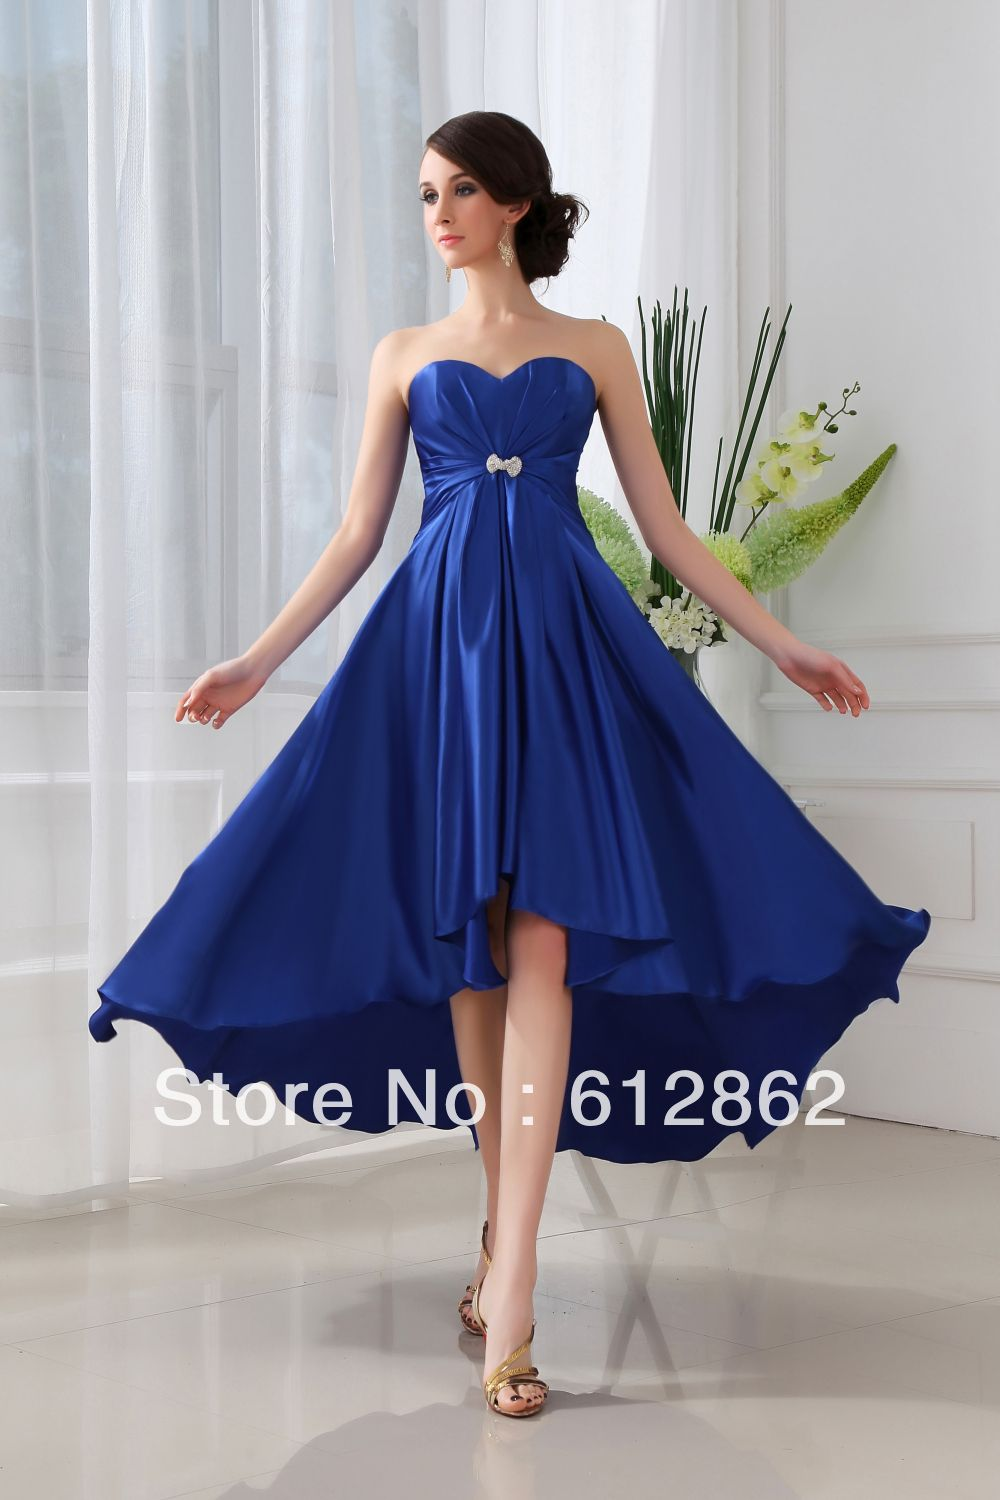 Royal blue short wedding dresses displaying 17 images for Royal blue short wedding dresses